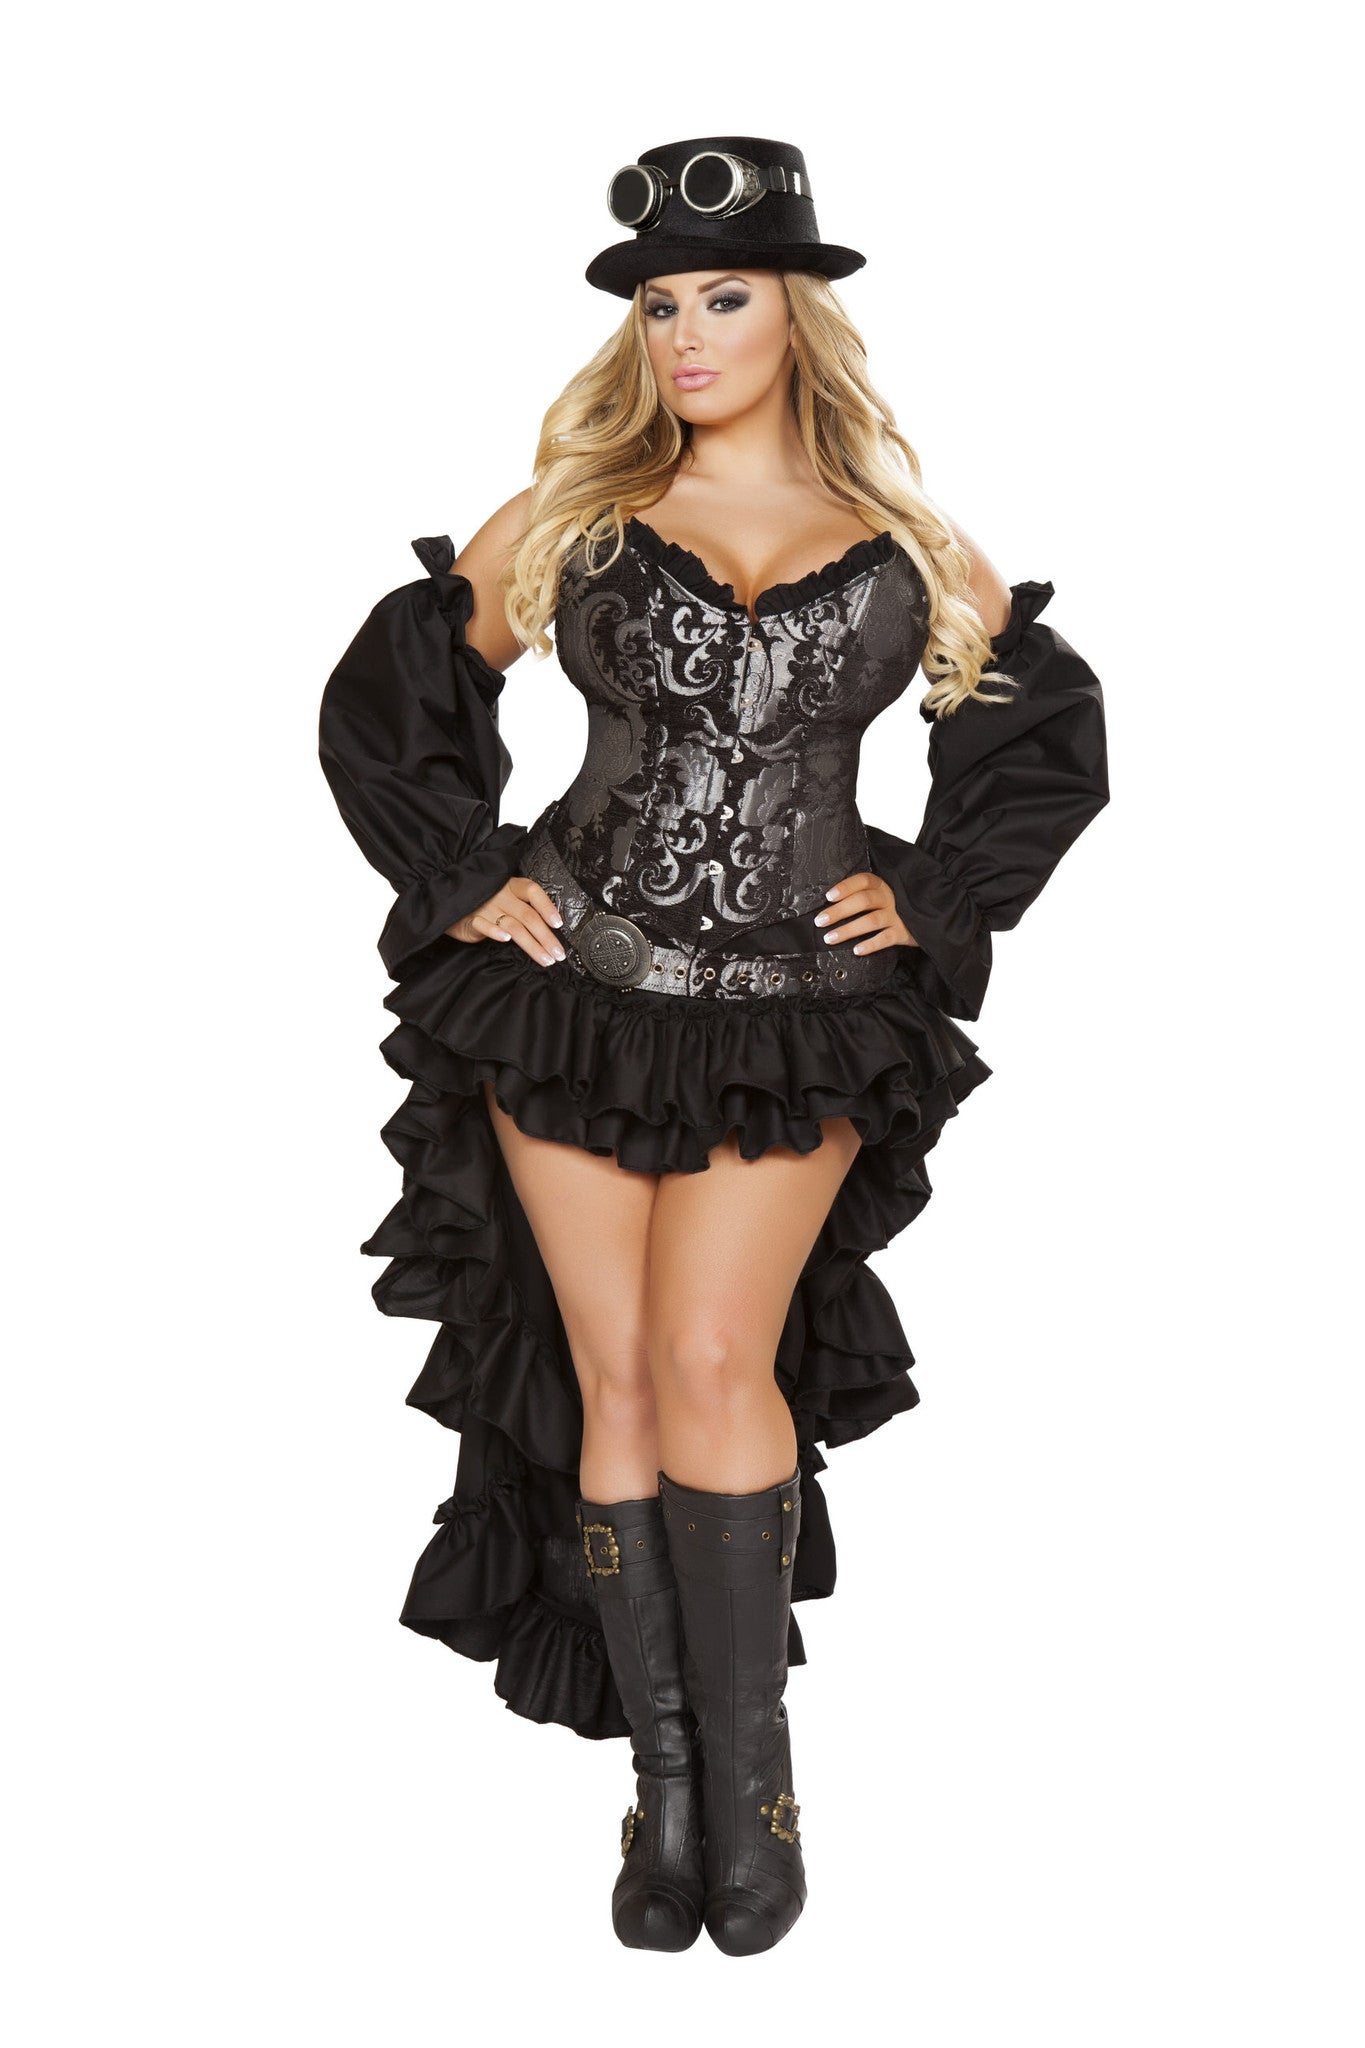 6pc Sexy Steampunk Maiden ${description} | Roma Costume and Roma Confidential wholesale manufacturer of Women Apparel bulk world wide wholesale and world wide drop ship services for Adult Halloween Costumes, Sexy and Elegant Lingerie, Rave Clothing, Club wear, and Christmas Costumes. Costumes, Roma Costume, Inc., Roma Costume, Roma Confidential, Wholesale clothing, drop ship, drop ship service, Wholesale Lingerie, Wholesale Adult Halloween Costumes, Rave Clothing, EDM Clothing, Festival Wear, Christmas Costumes, Clubwear, Club wear.